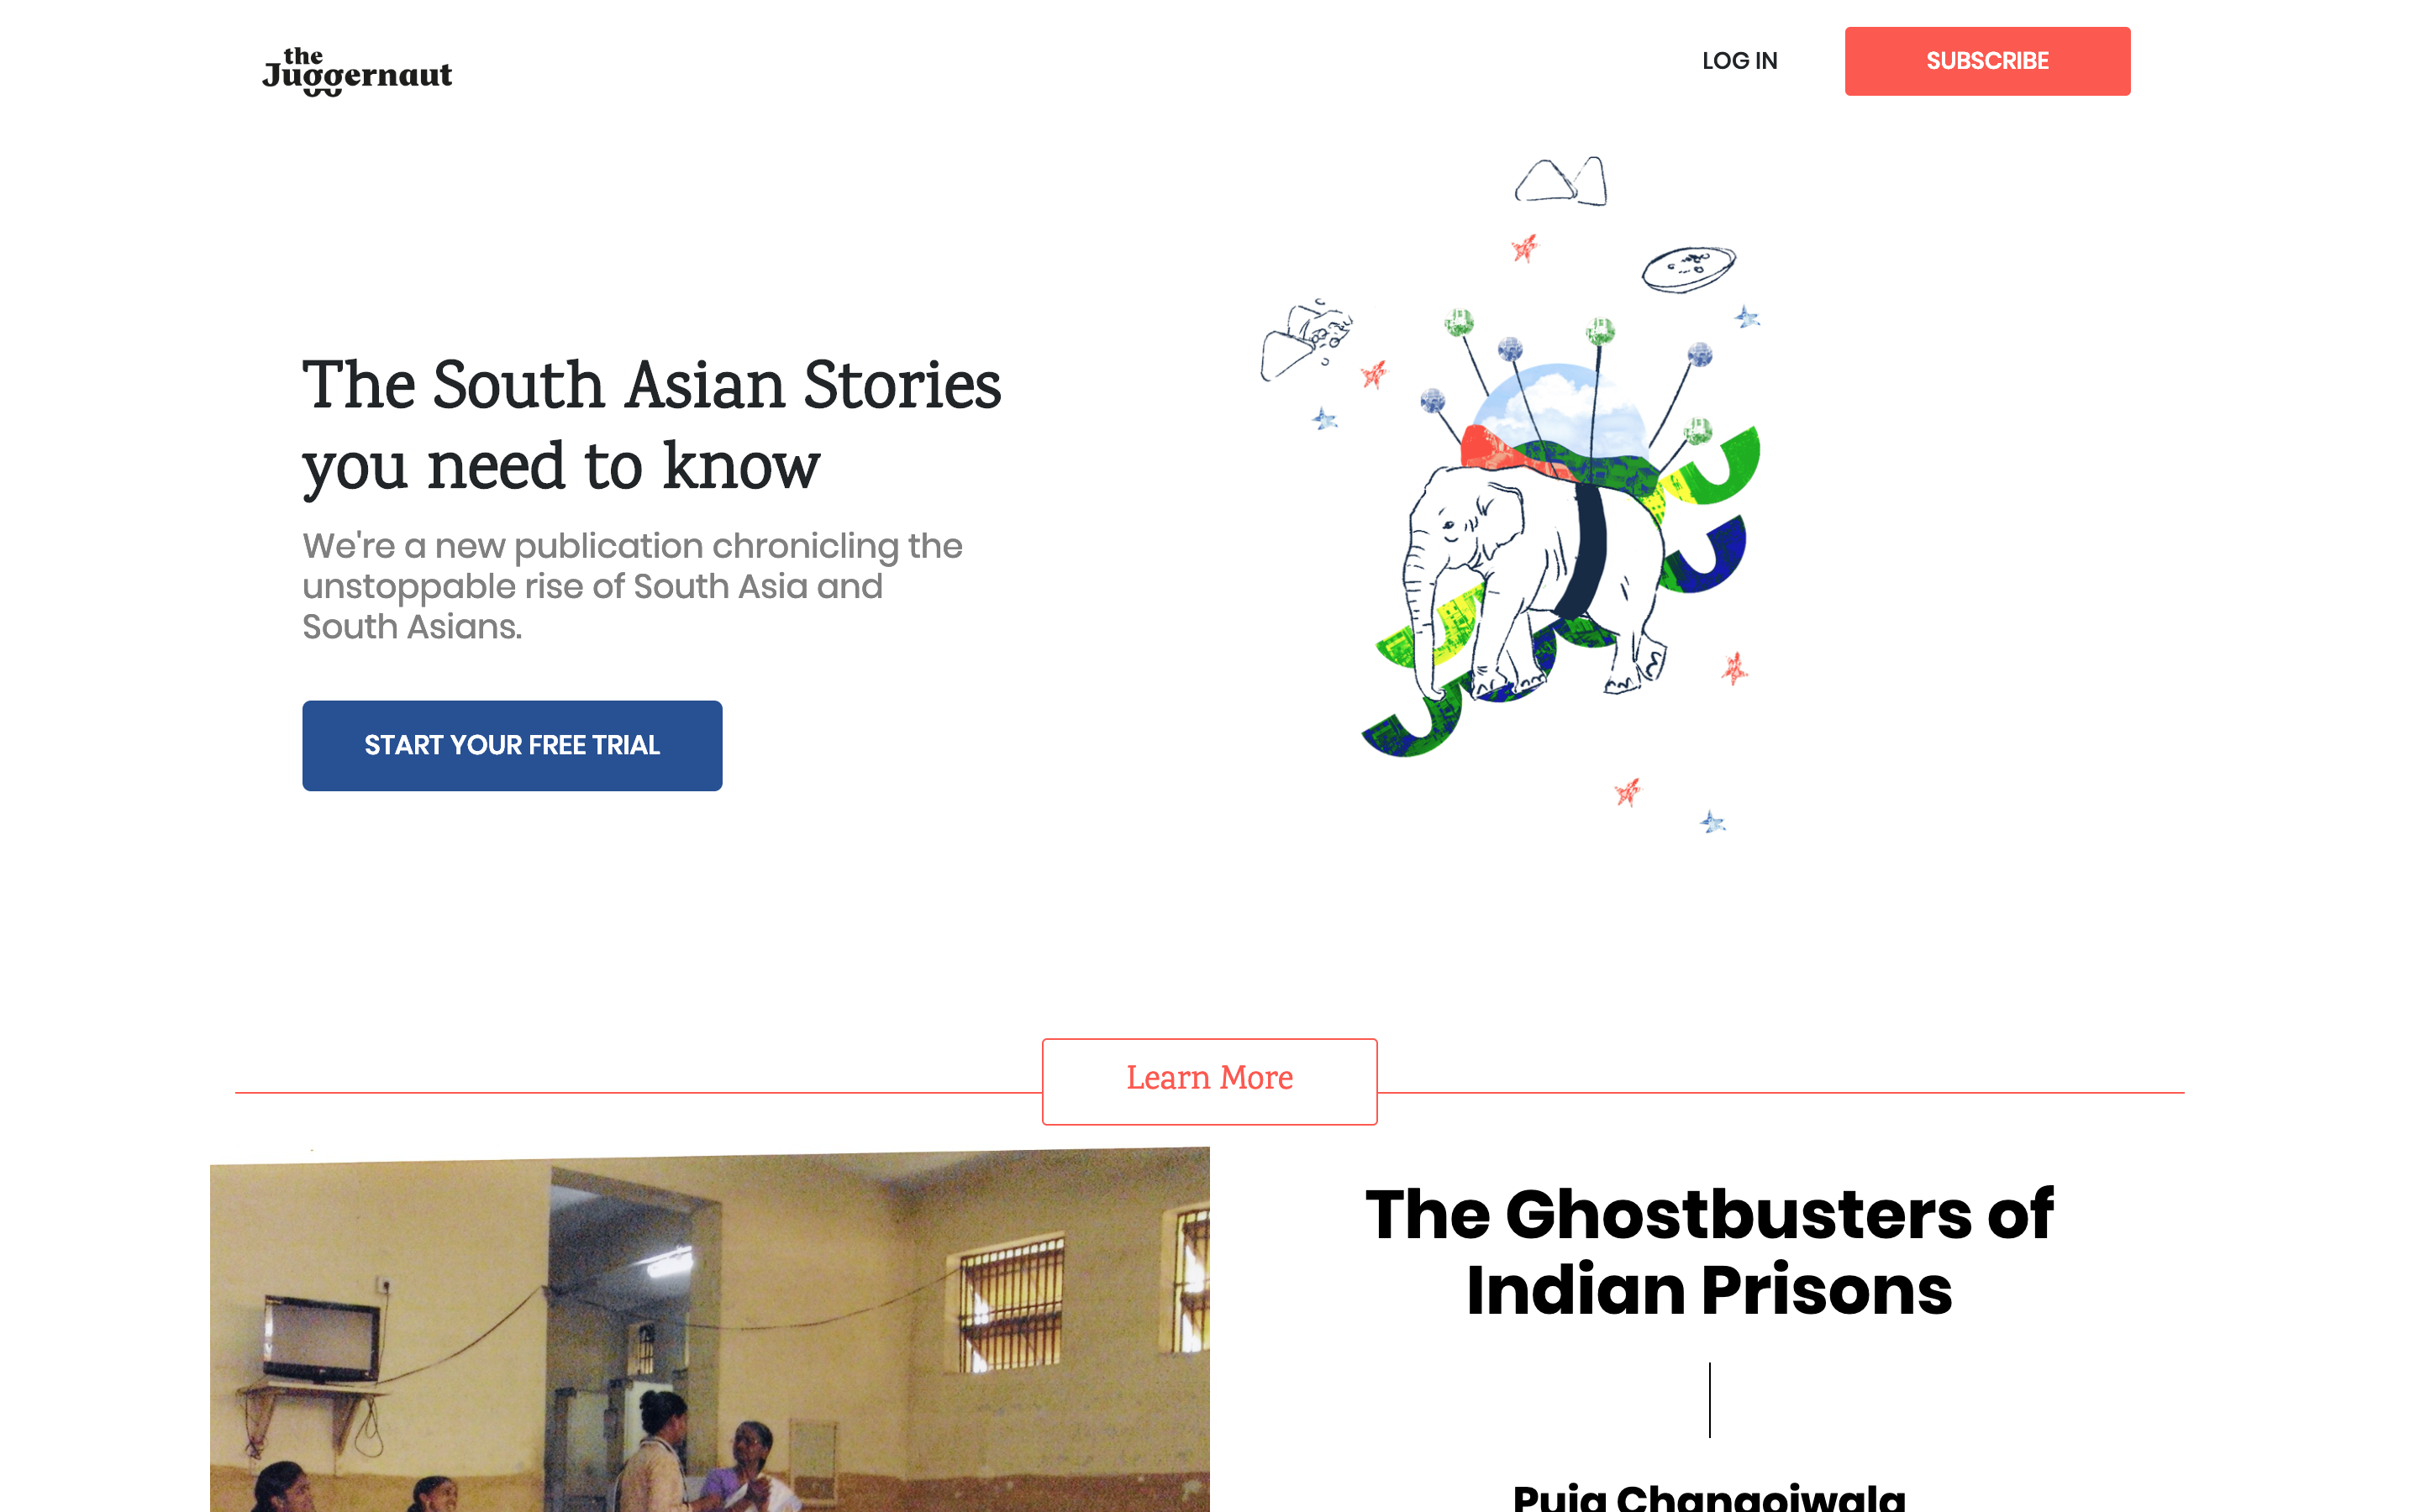 The Juggernaut is a subscription media company for the South Asian diaspora